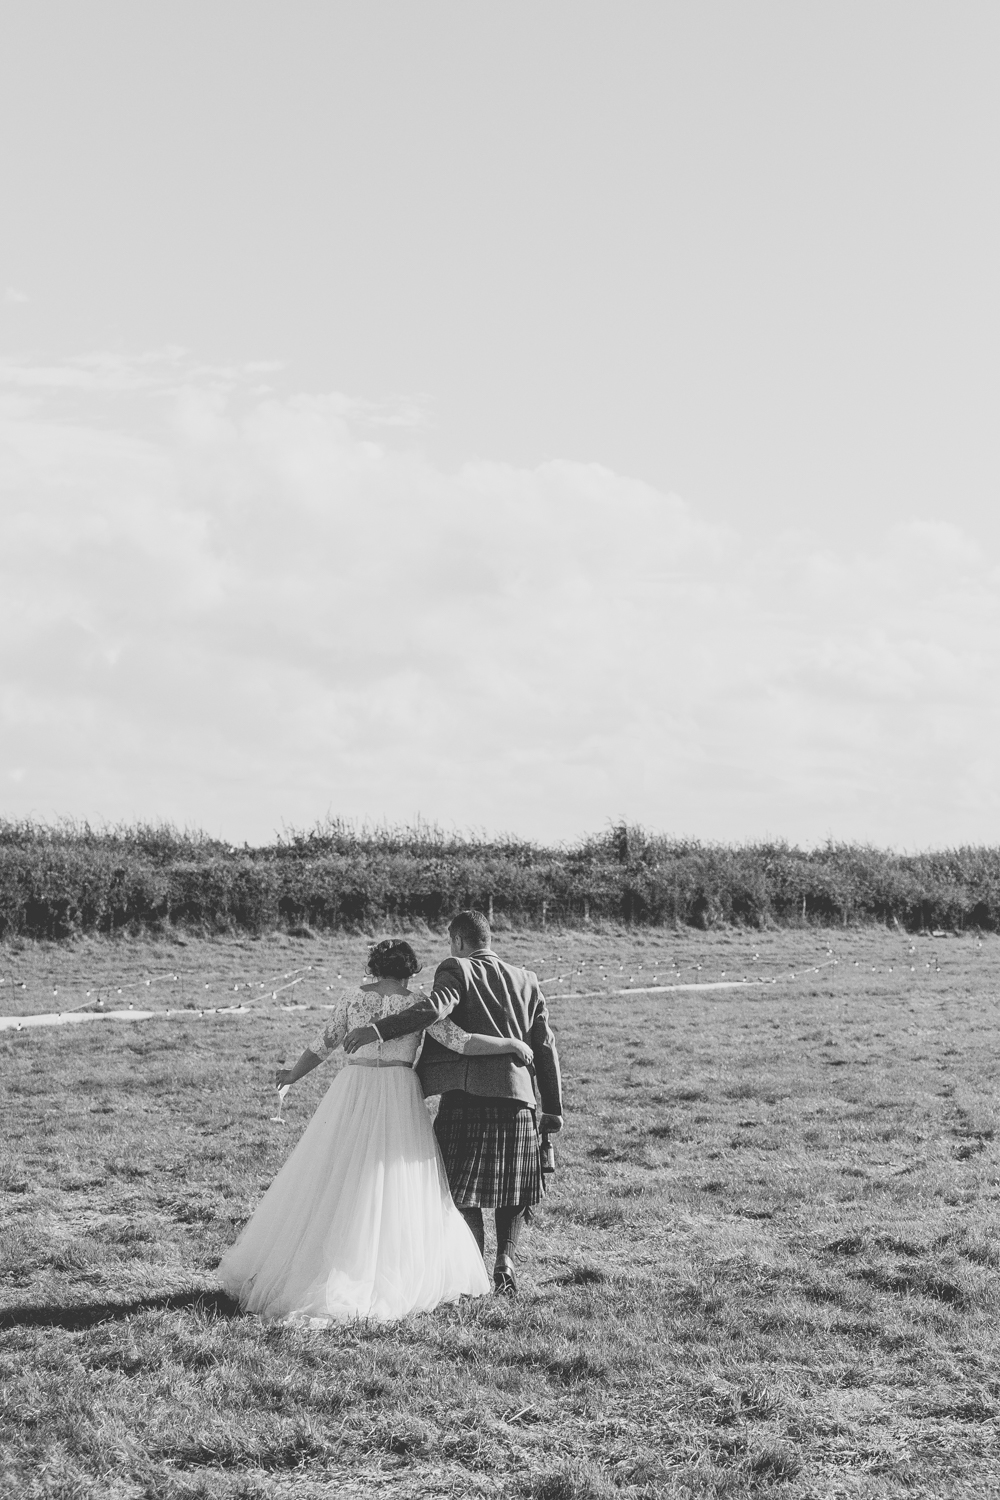 PICTORIAL_BERWICK_wedding_bamburgh_castle_tipi_farm_rodgersons_-2134.jpg